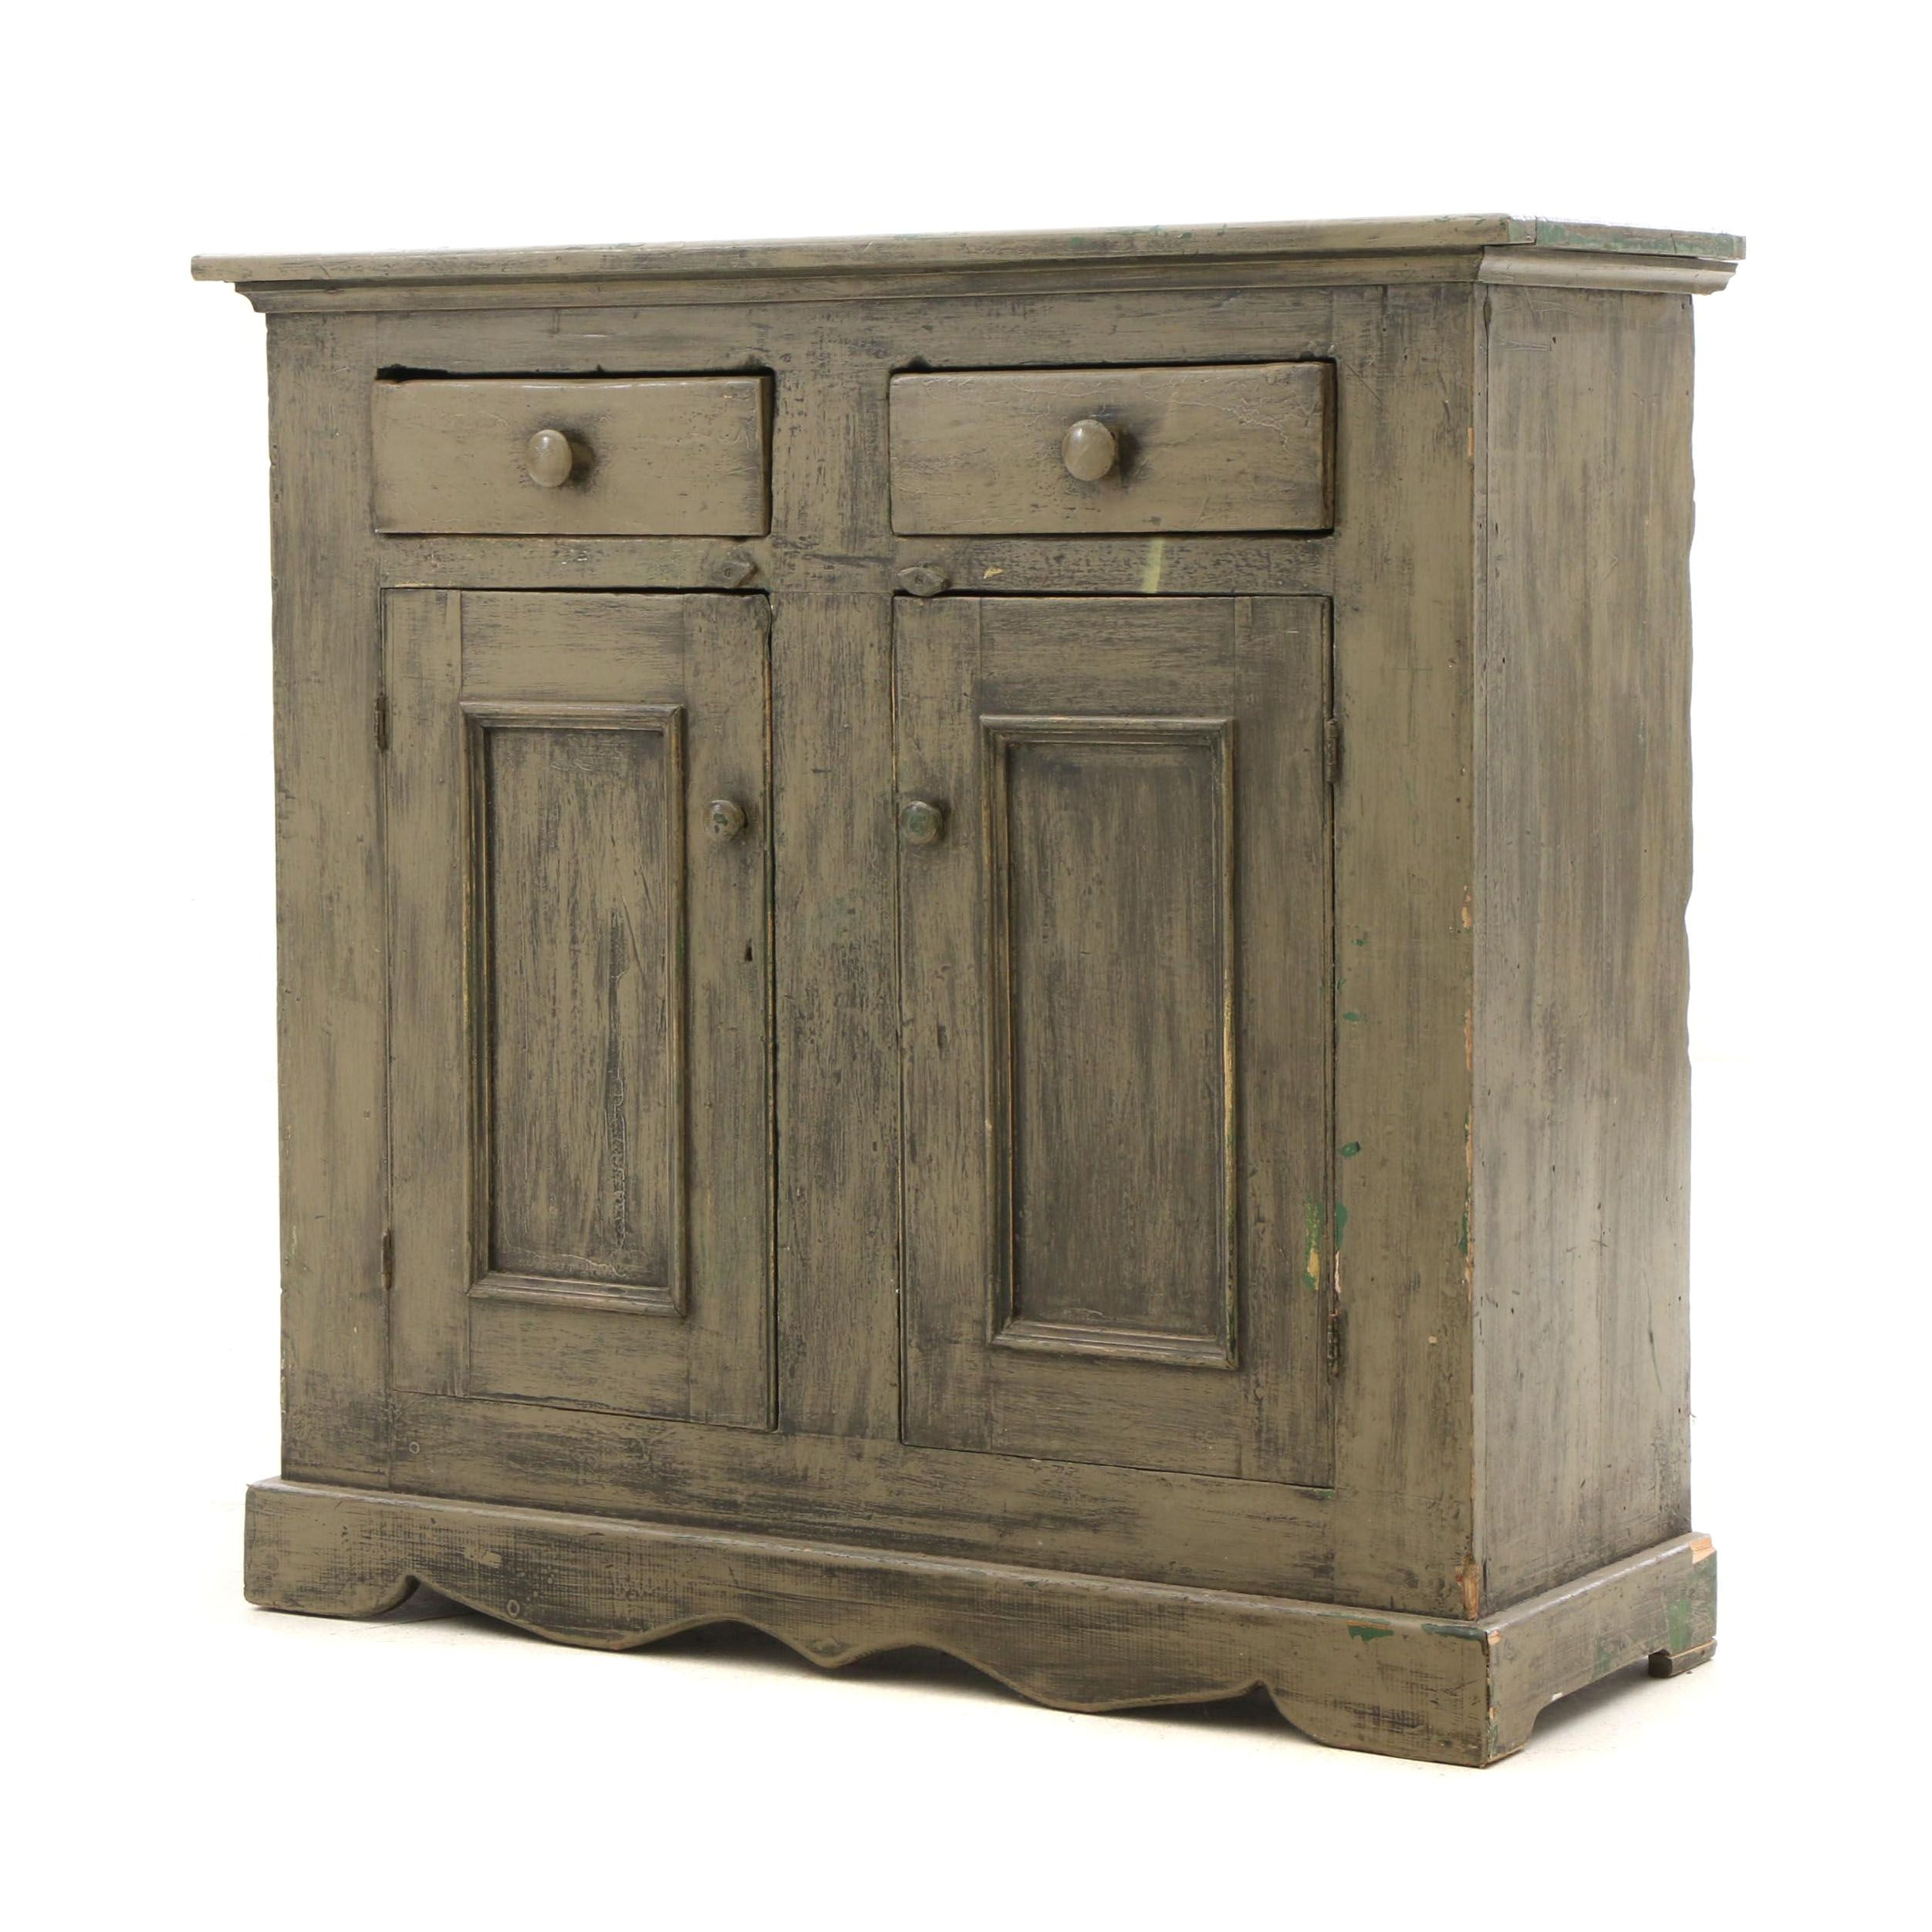 Antique Storage Cabinet with Green Painted Finish